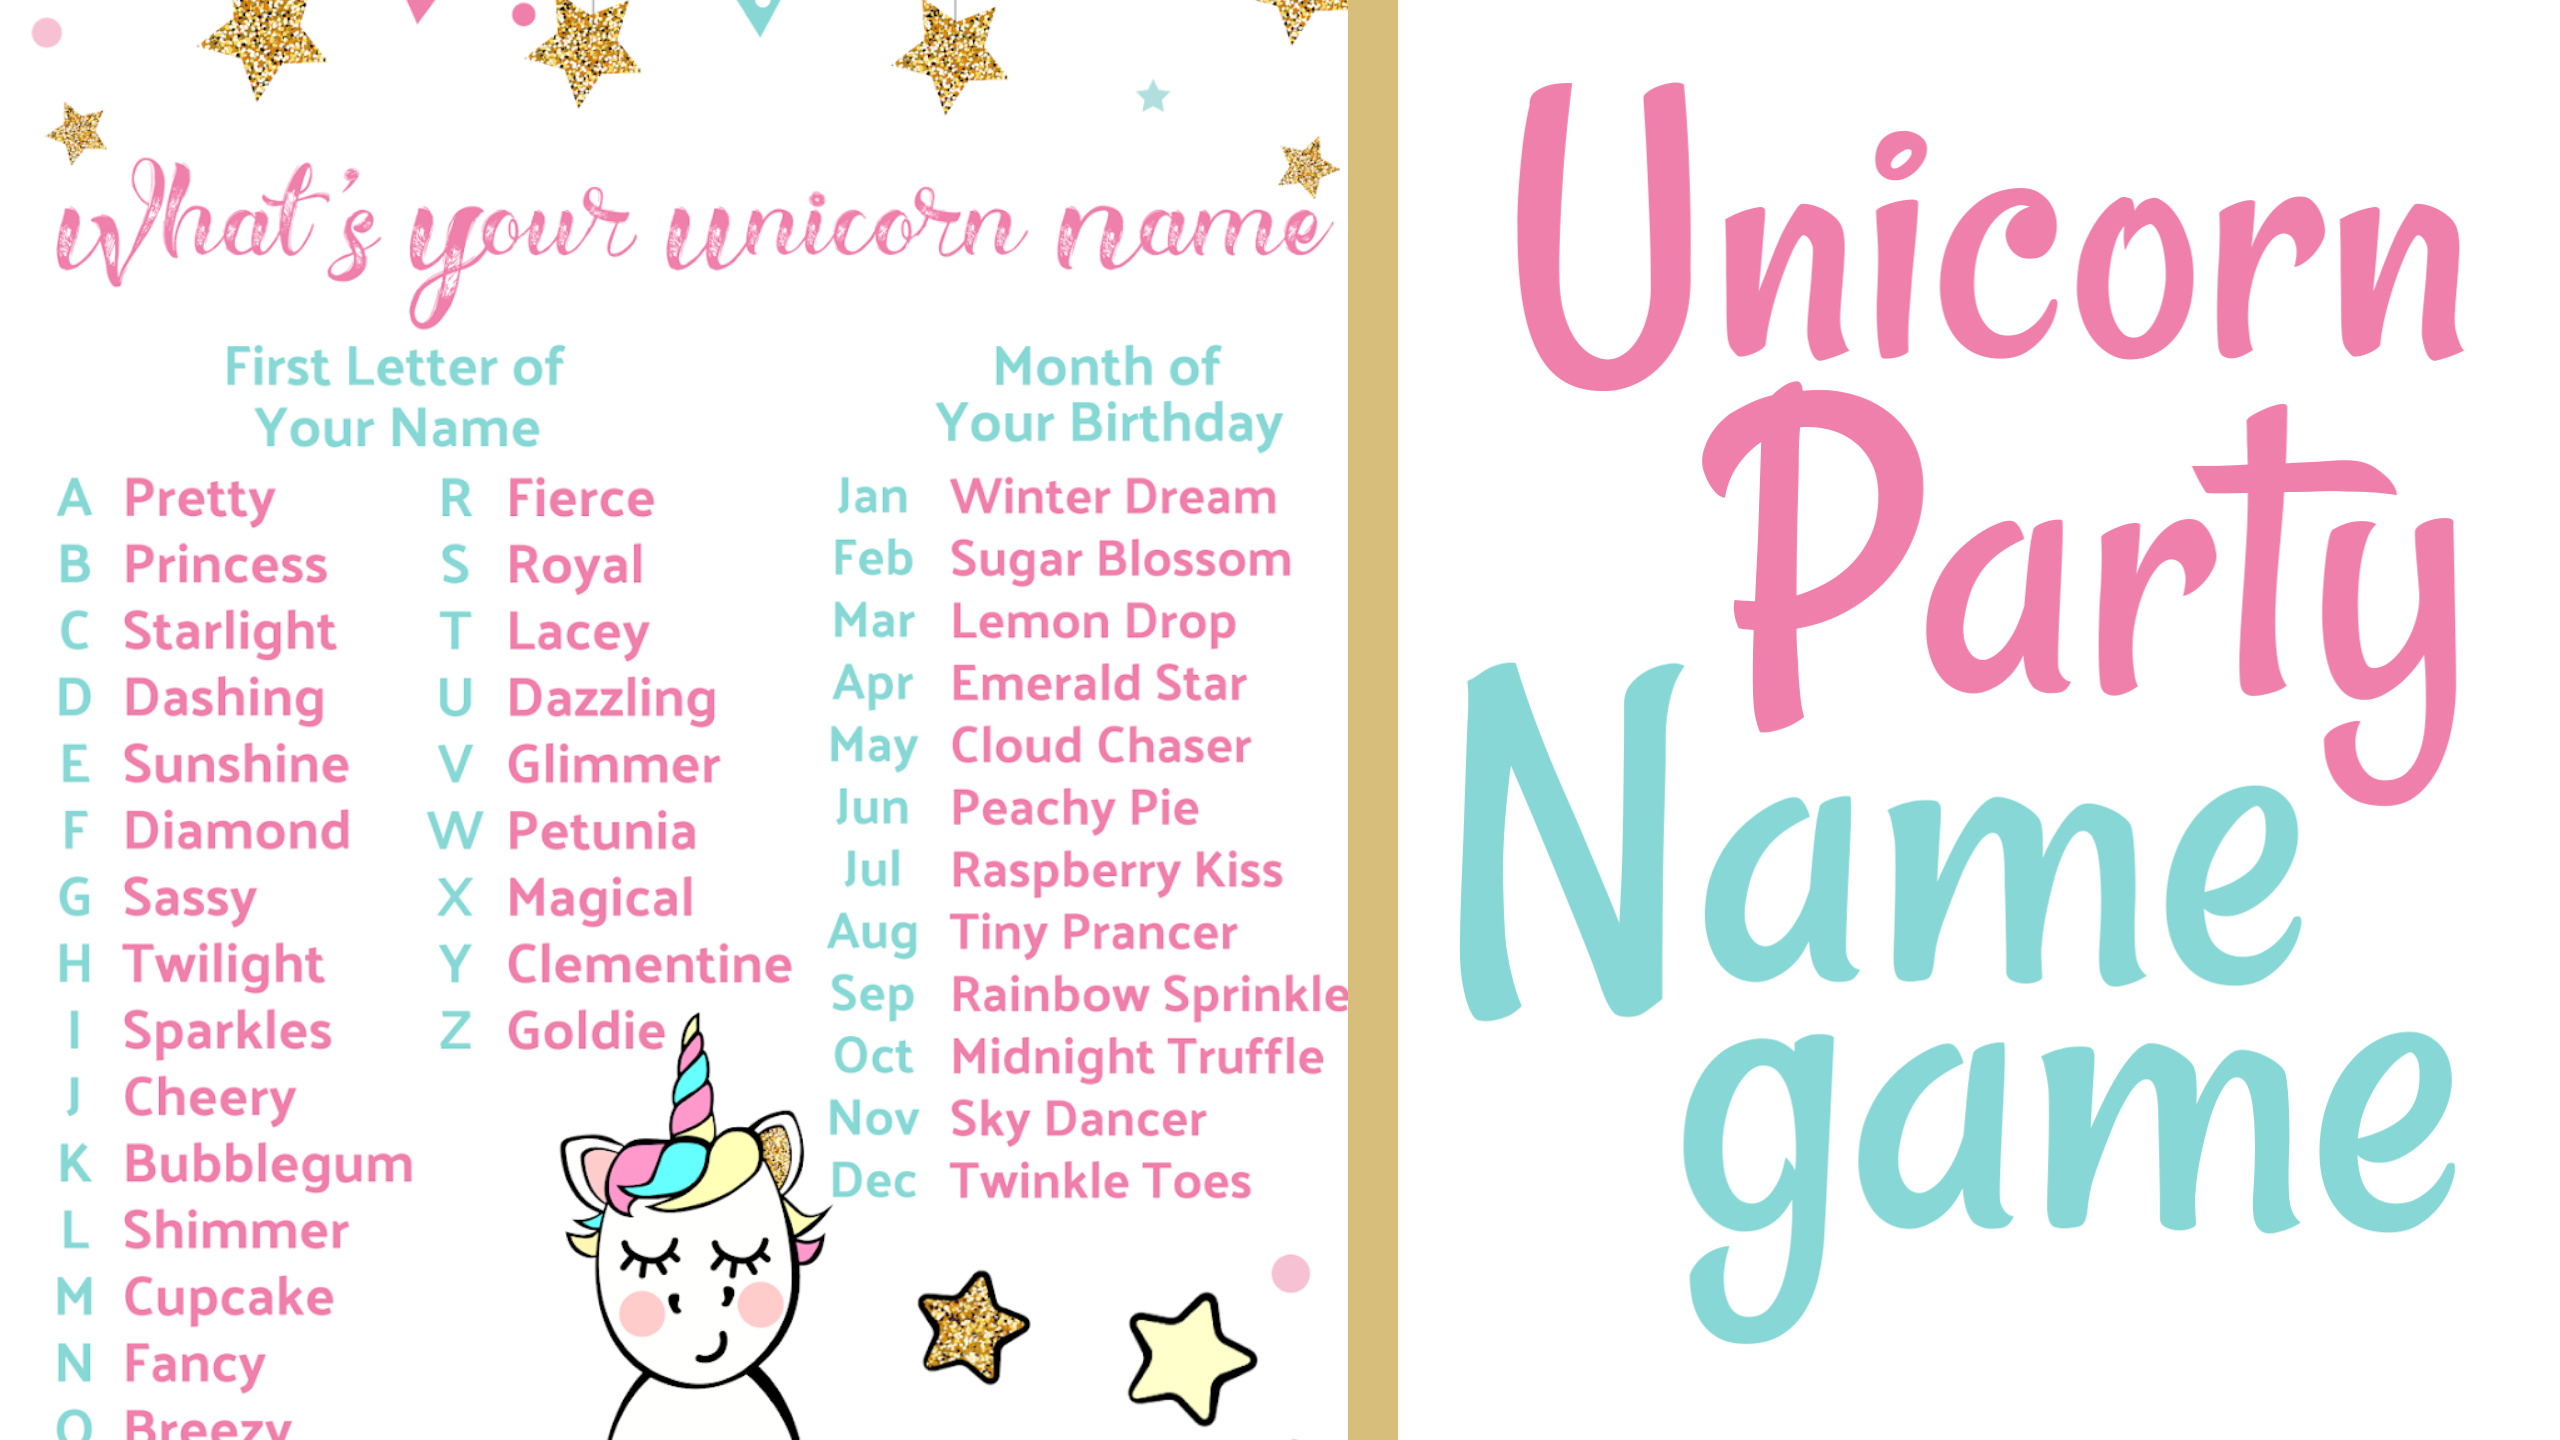 image about Free Unicorn Name Printable identify Unicorn Get together Popularity Match ~ The Frugal Sisters